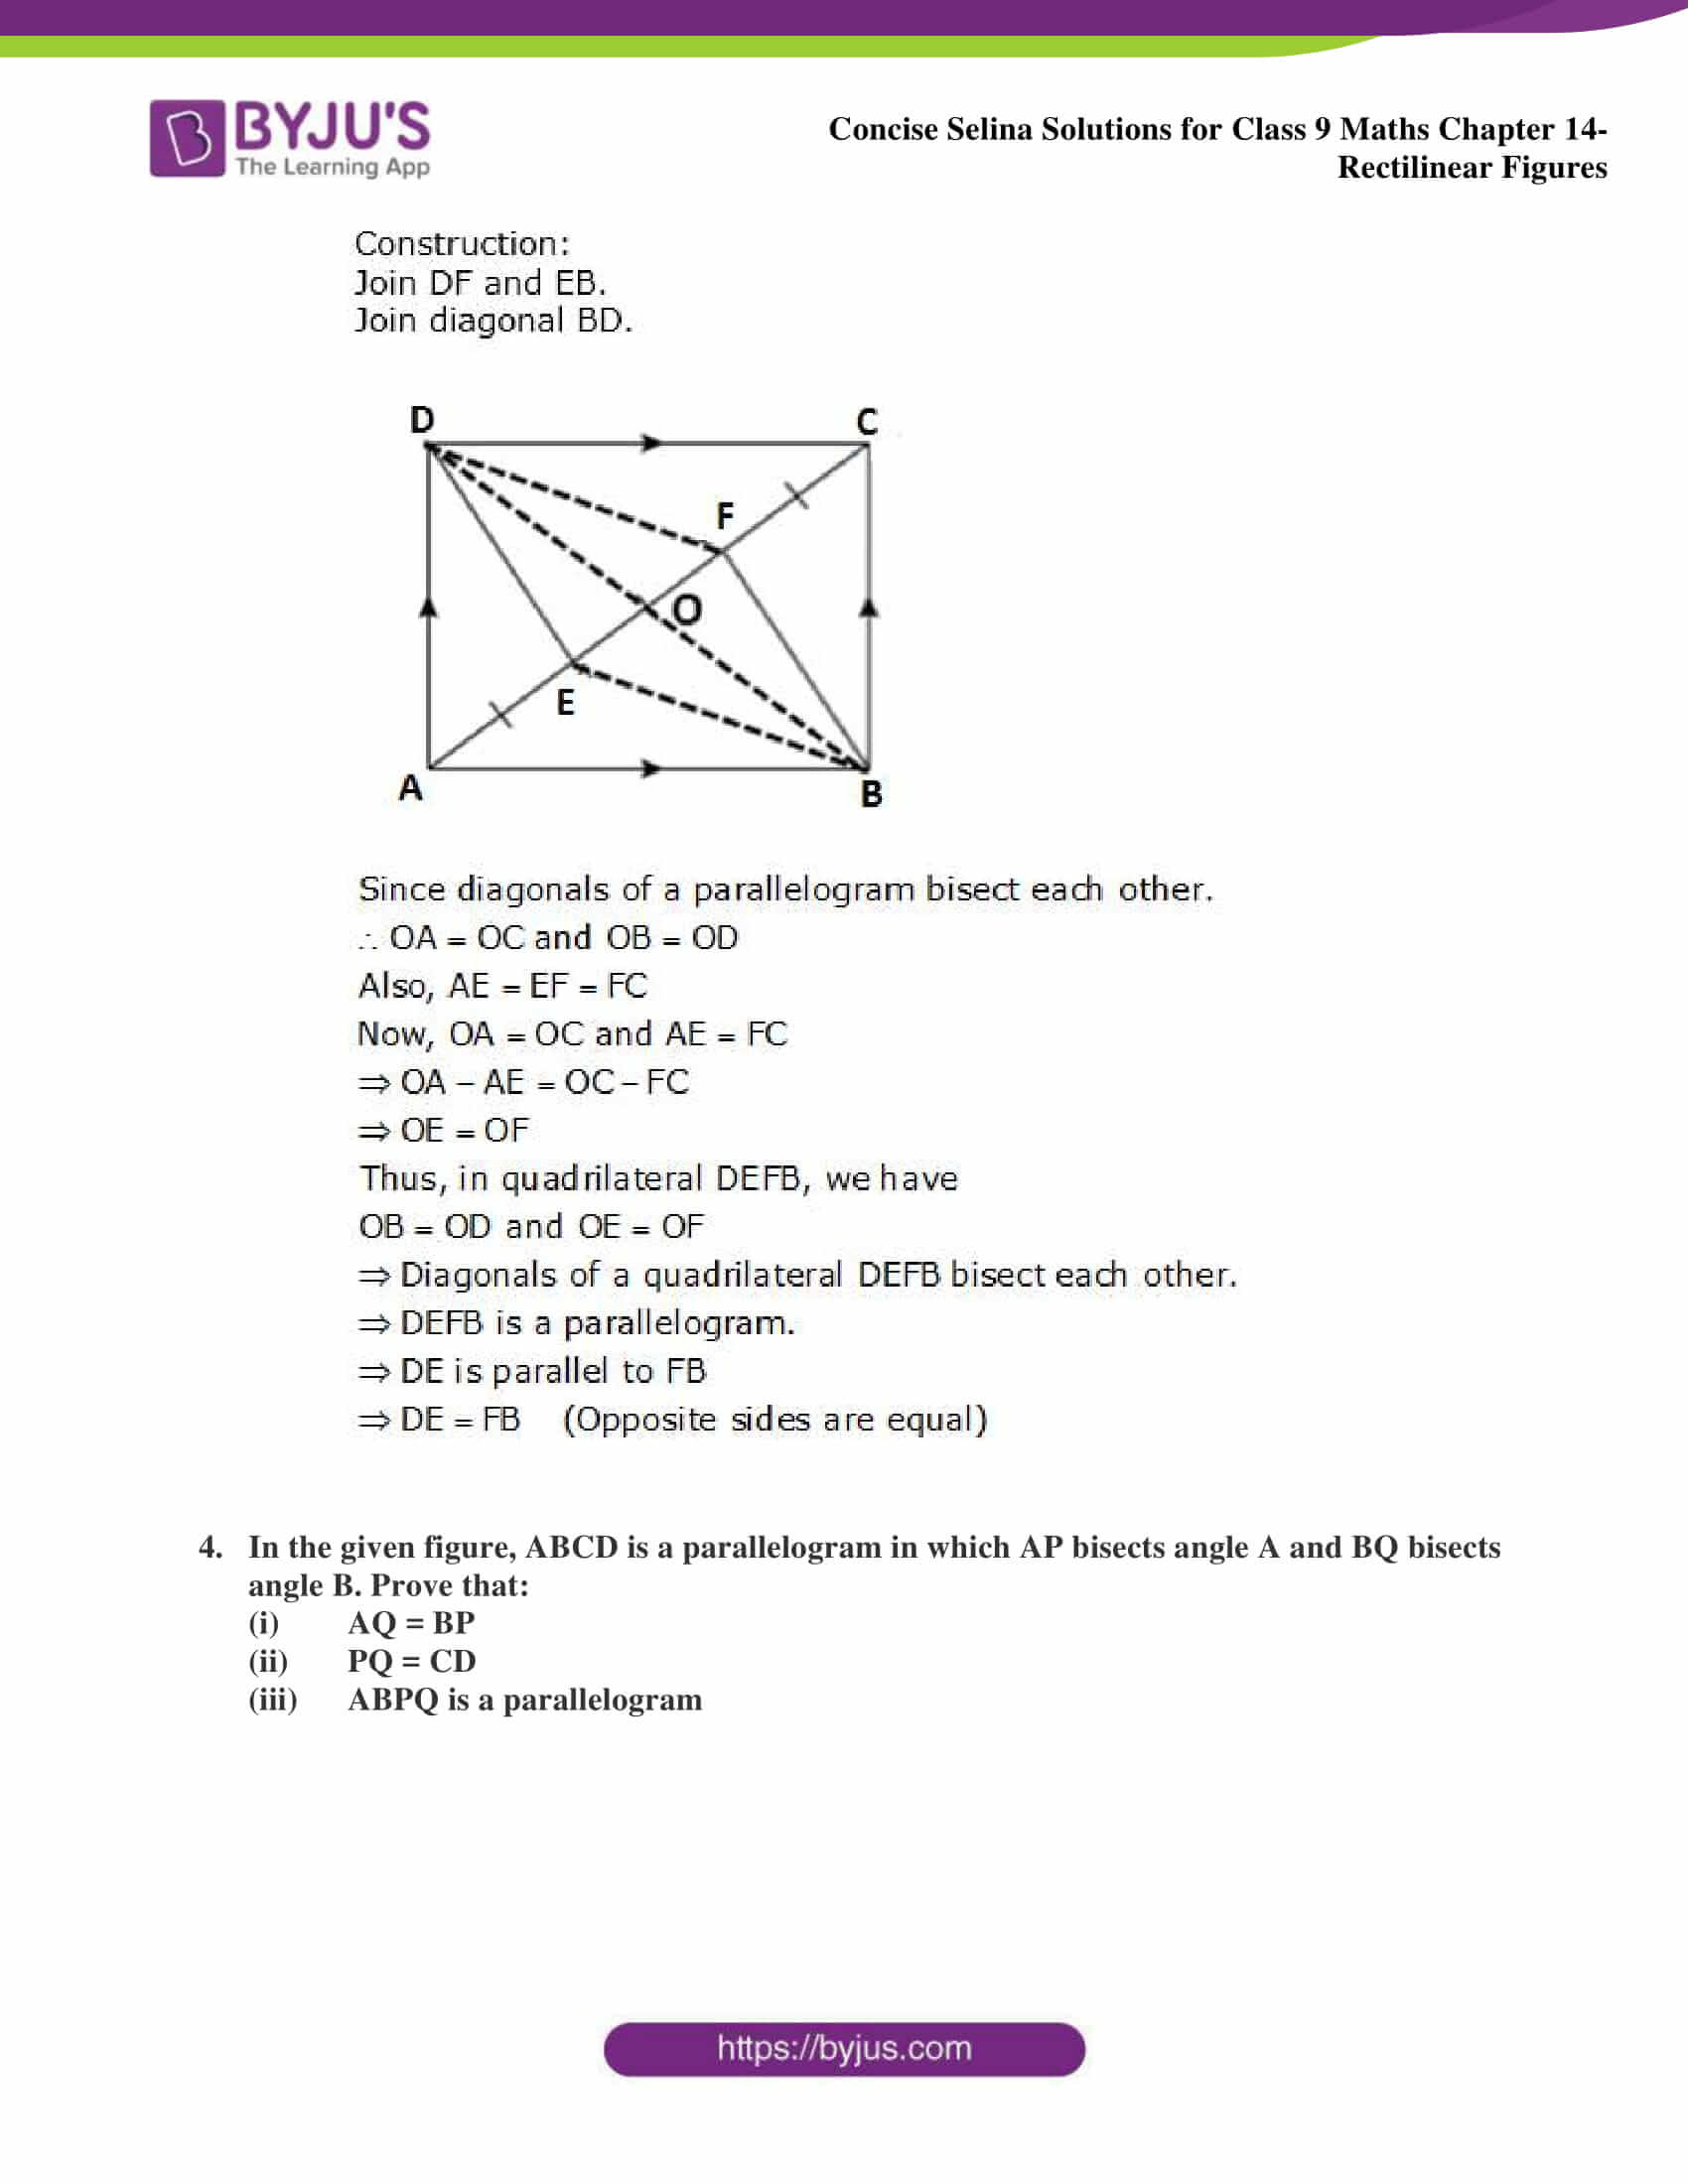 selina Solutions for Class 9 Maths Chapter 14 part 19